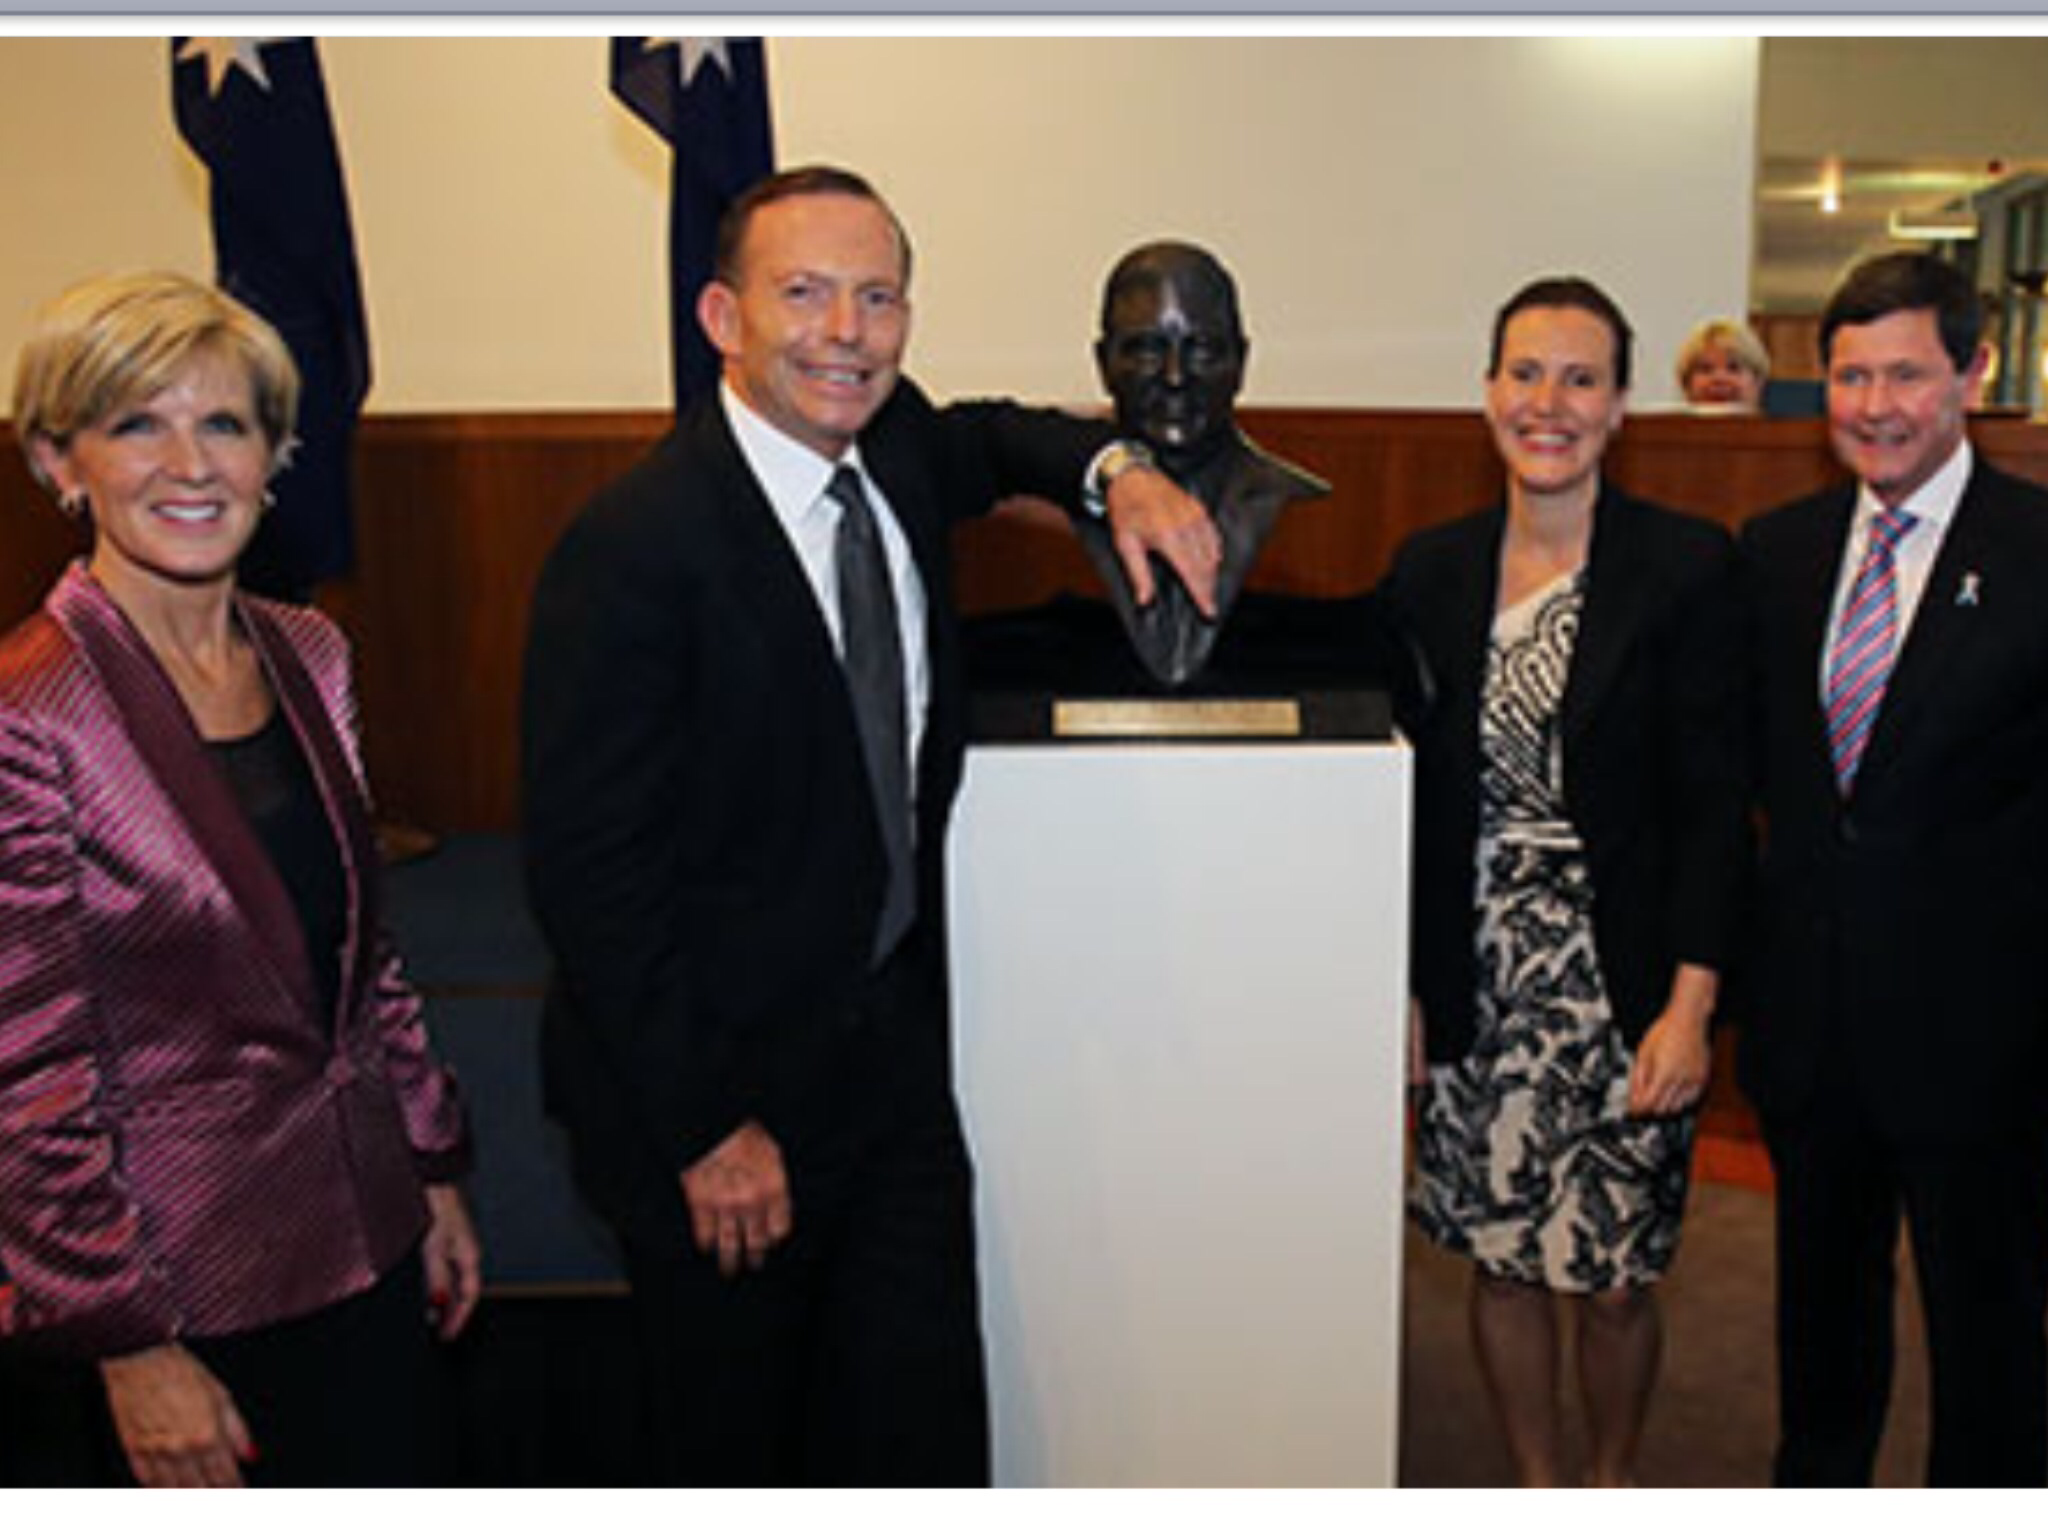 SIR ROBERT MENZIES BUST